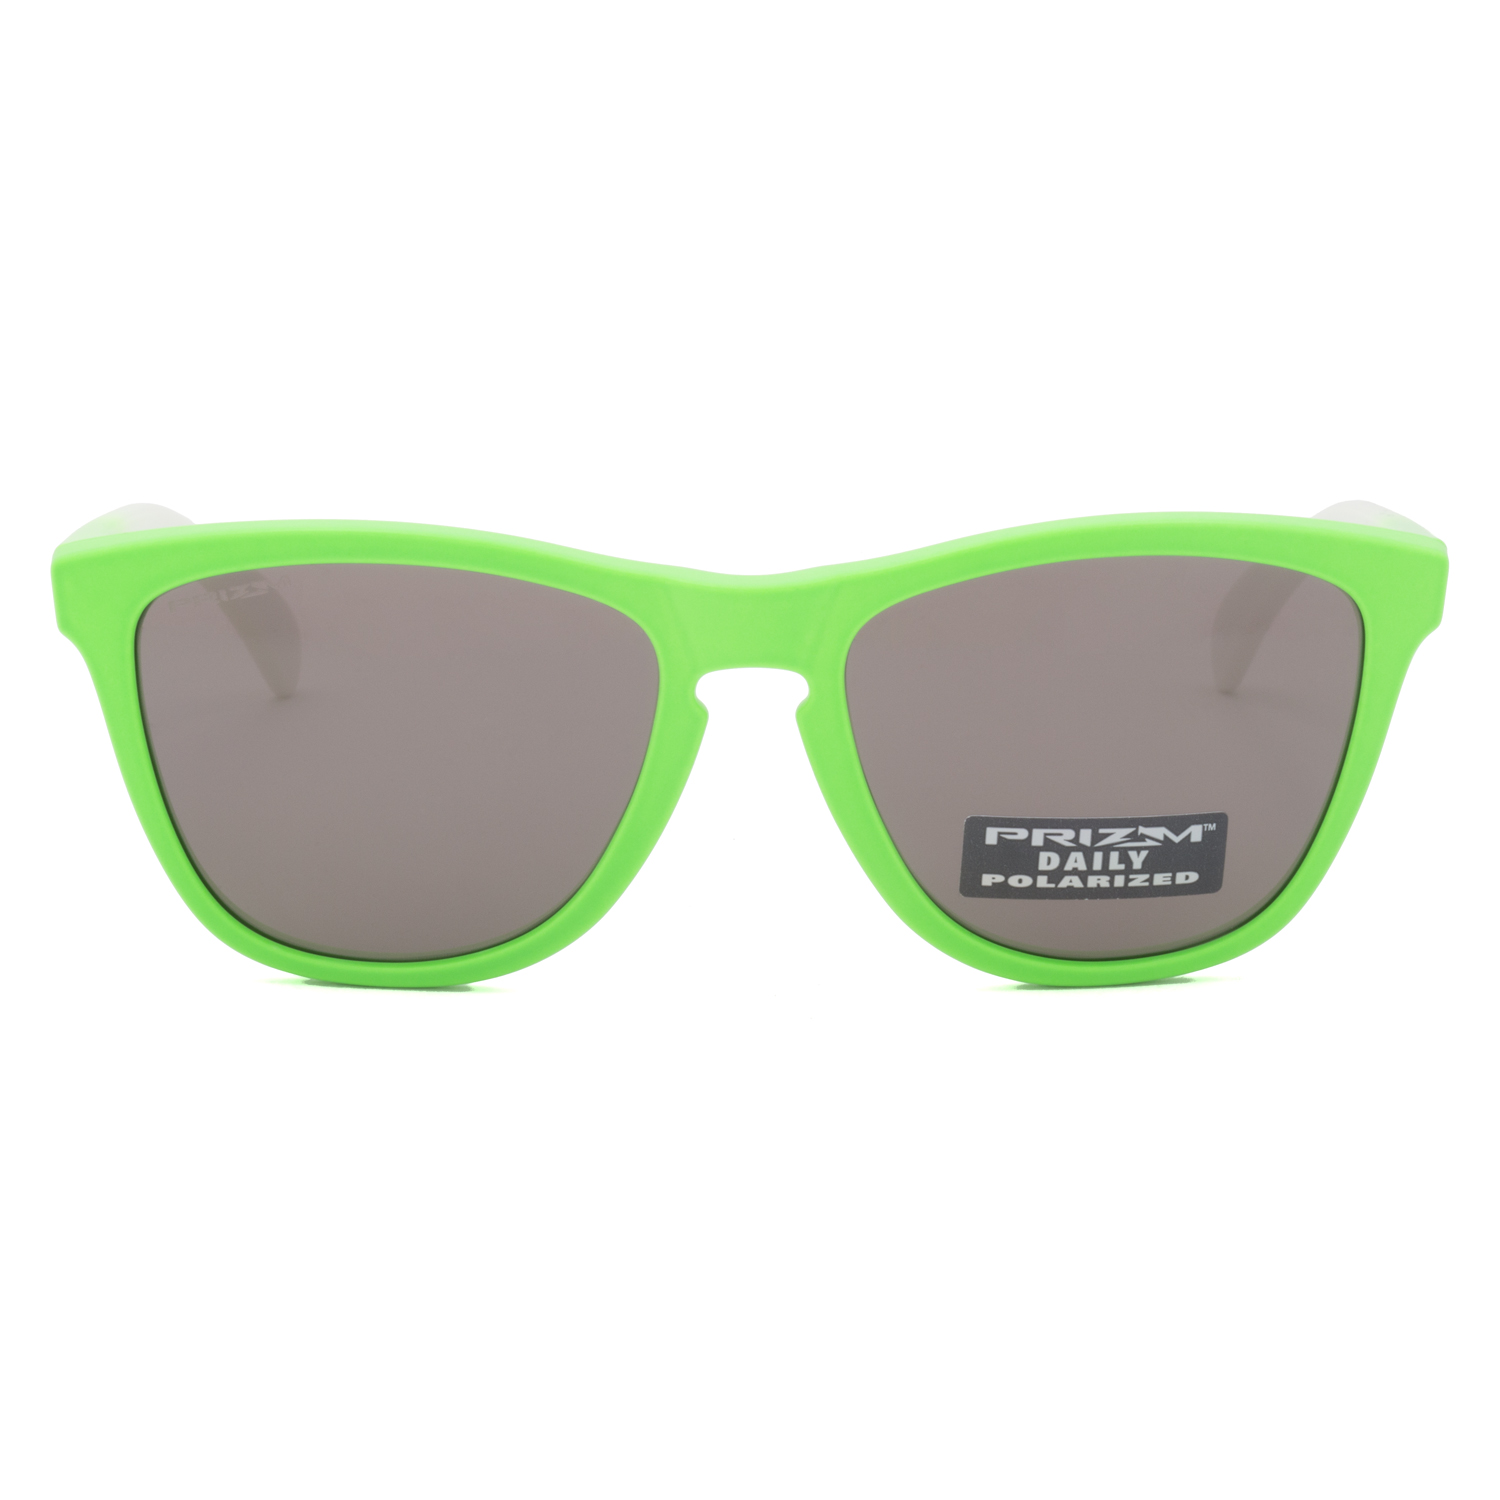 0e08876c9d Oakley Frogskins Sunglasses OO9013-99 Green Fade   Prizm Daily Polarized